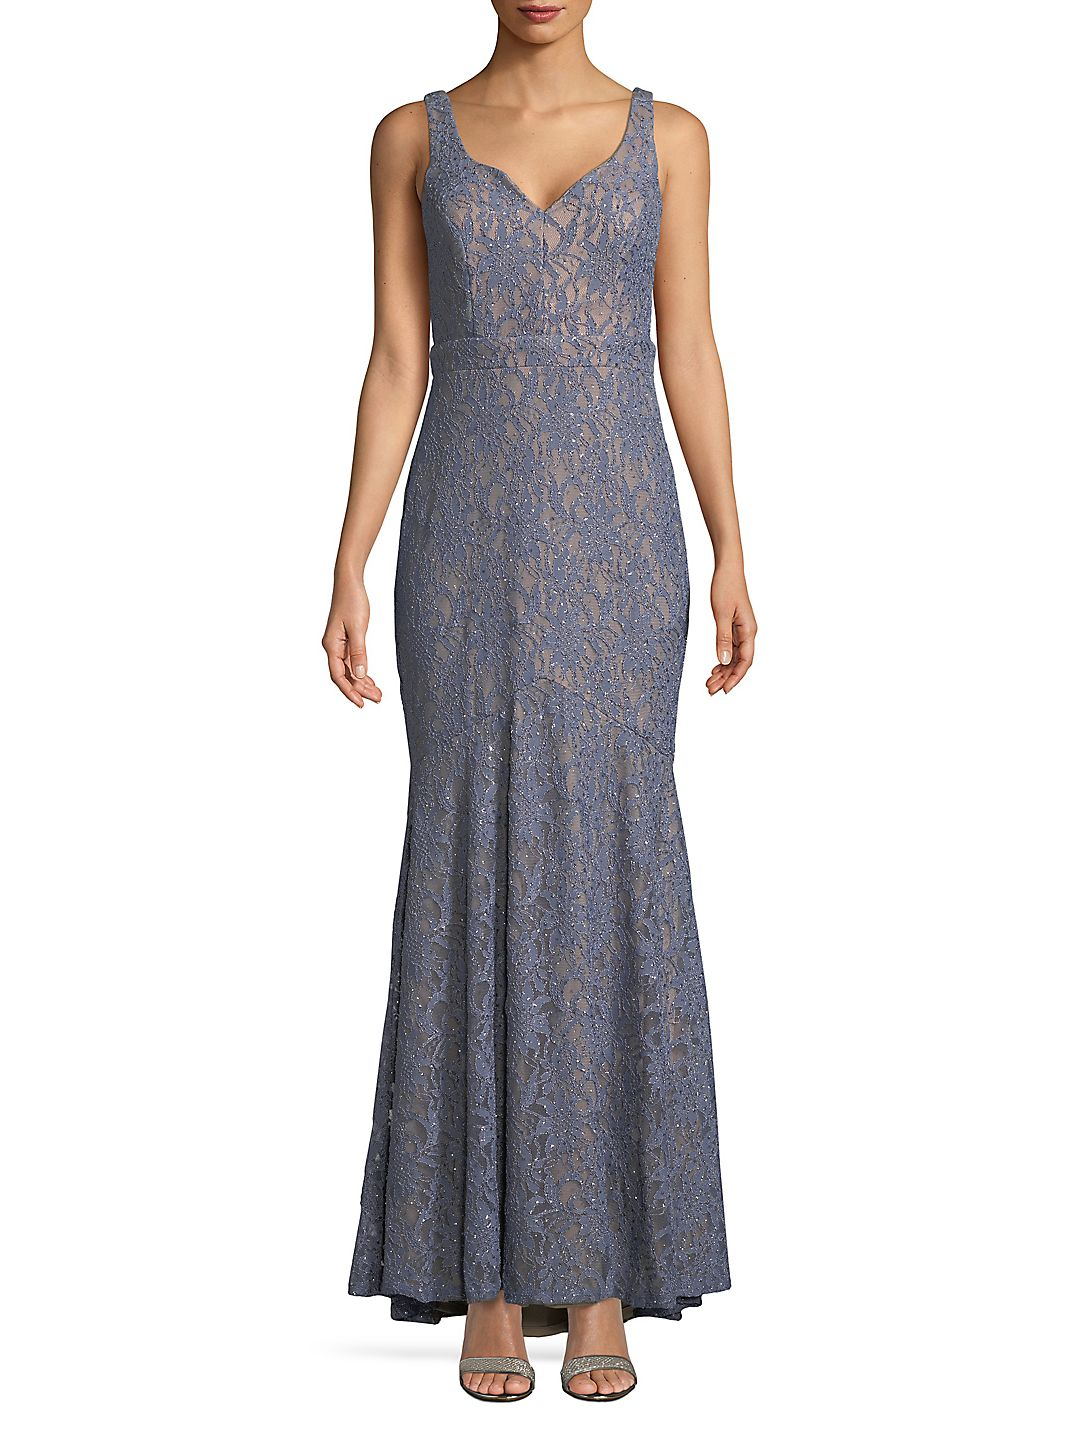 Embroidered Lace Floor-Length Dress